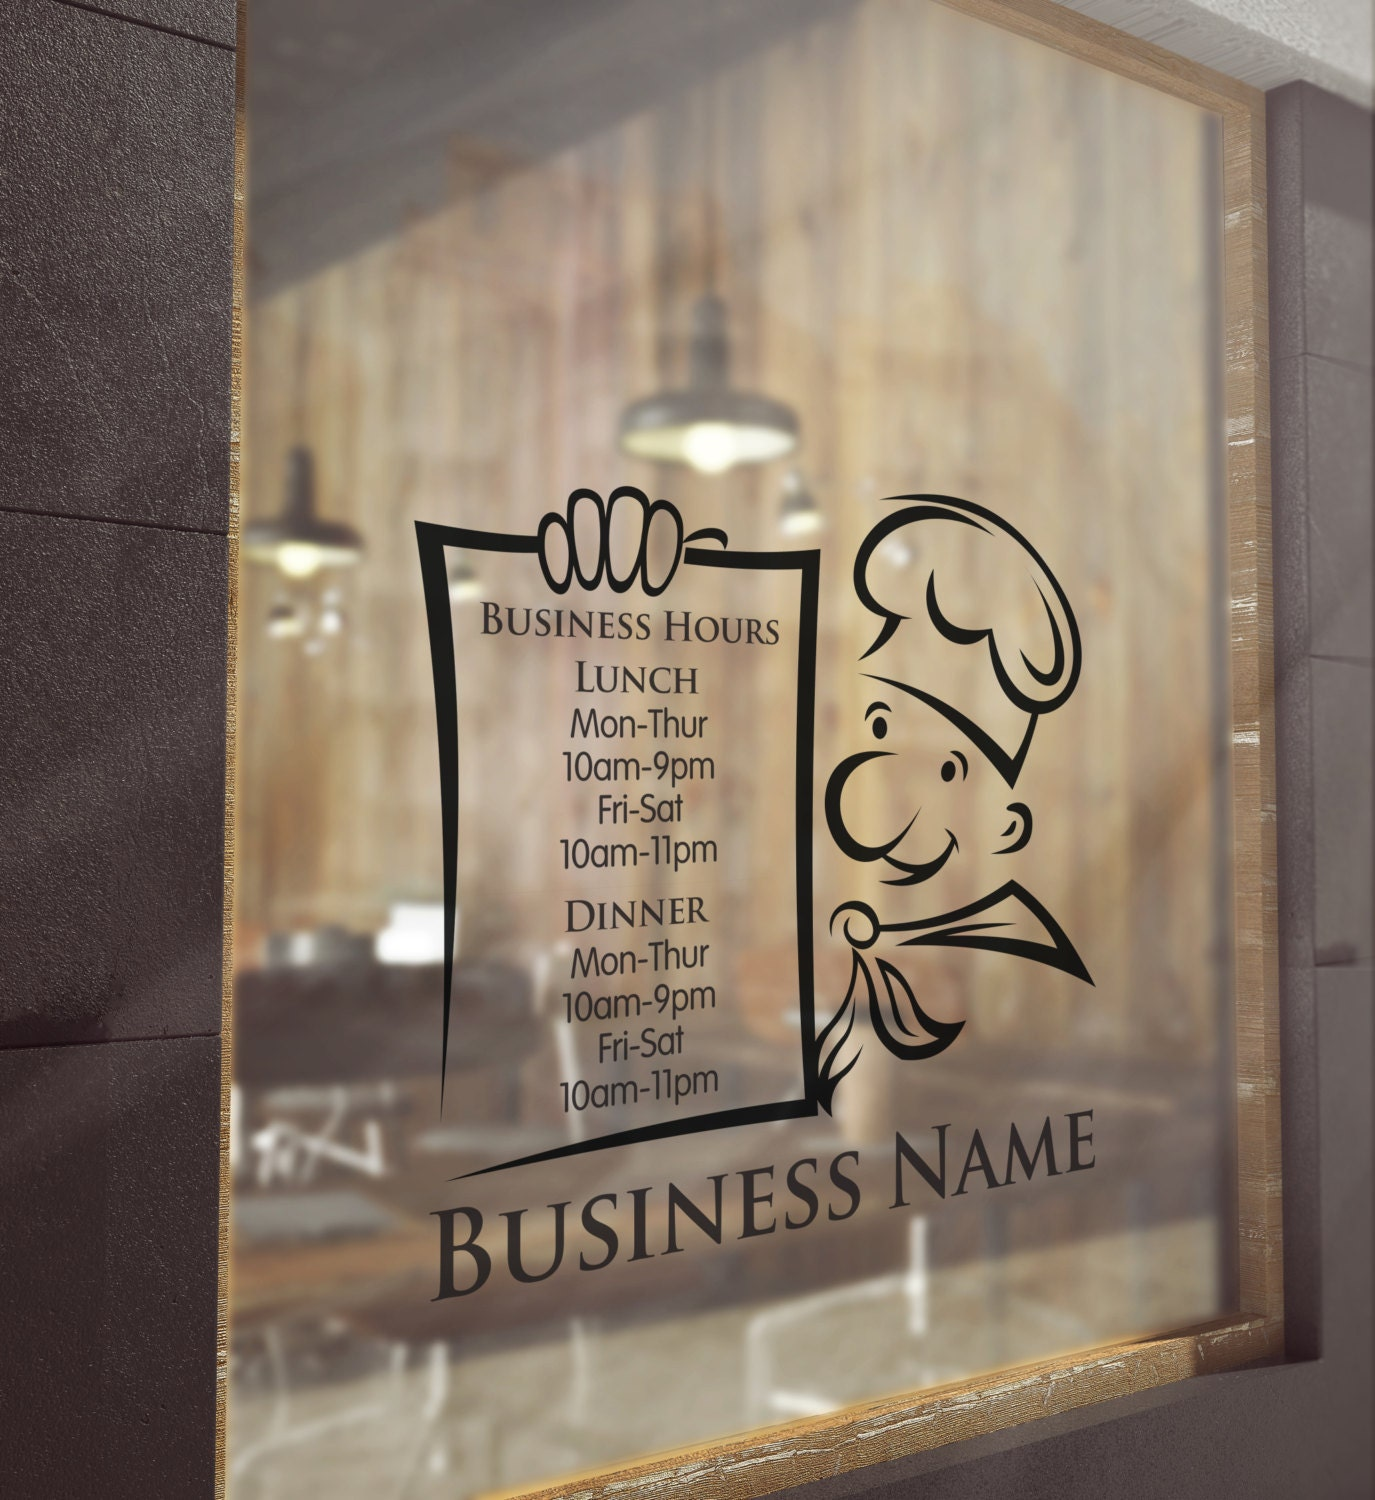 CUSTOM WINDOW DECAL Business Hours Window Decal Store Open - Window stickers for business hours